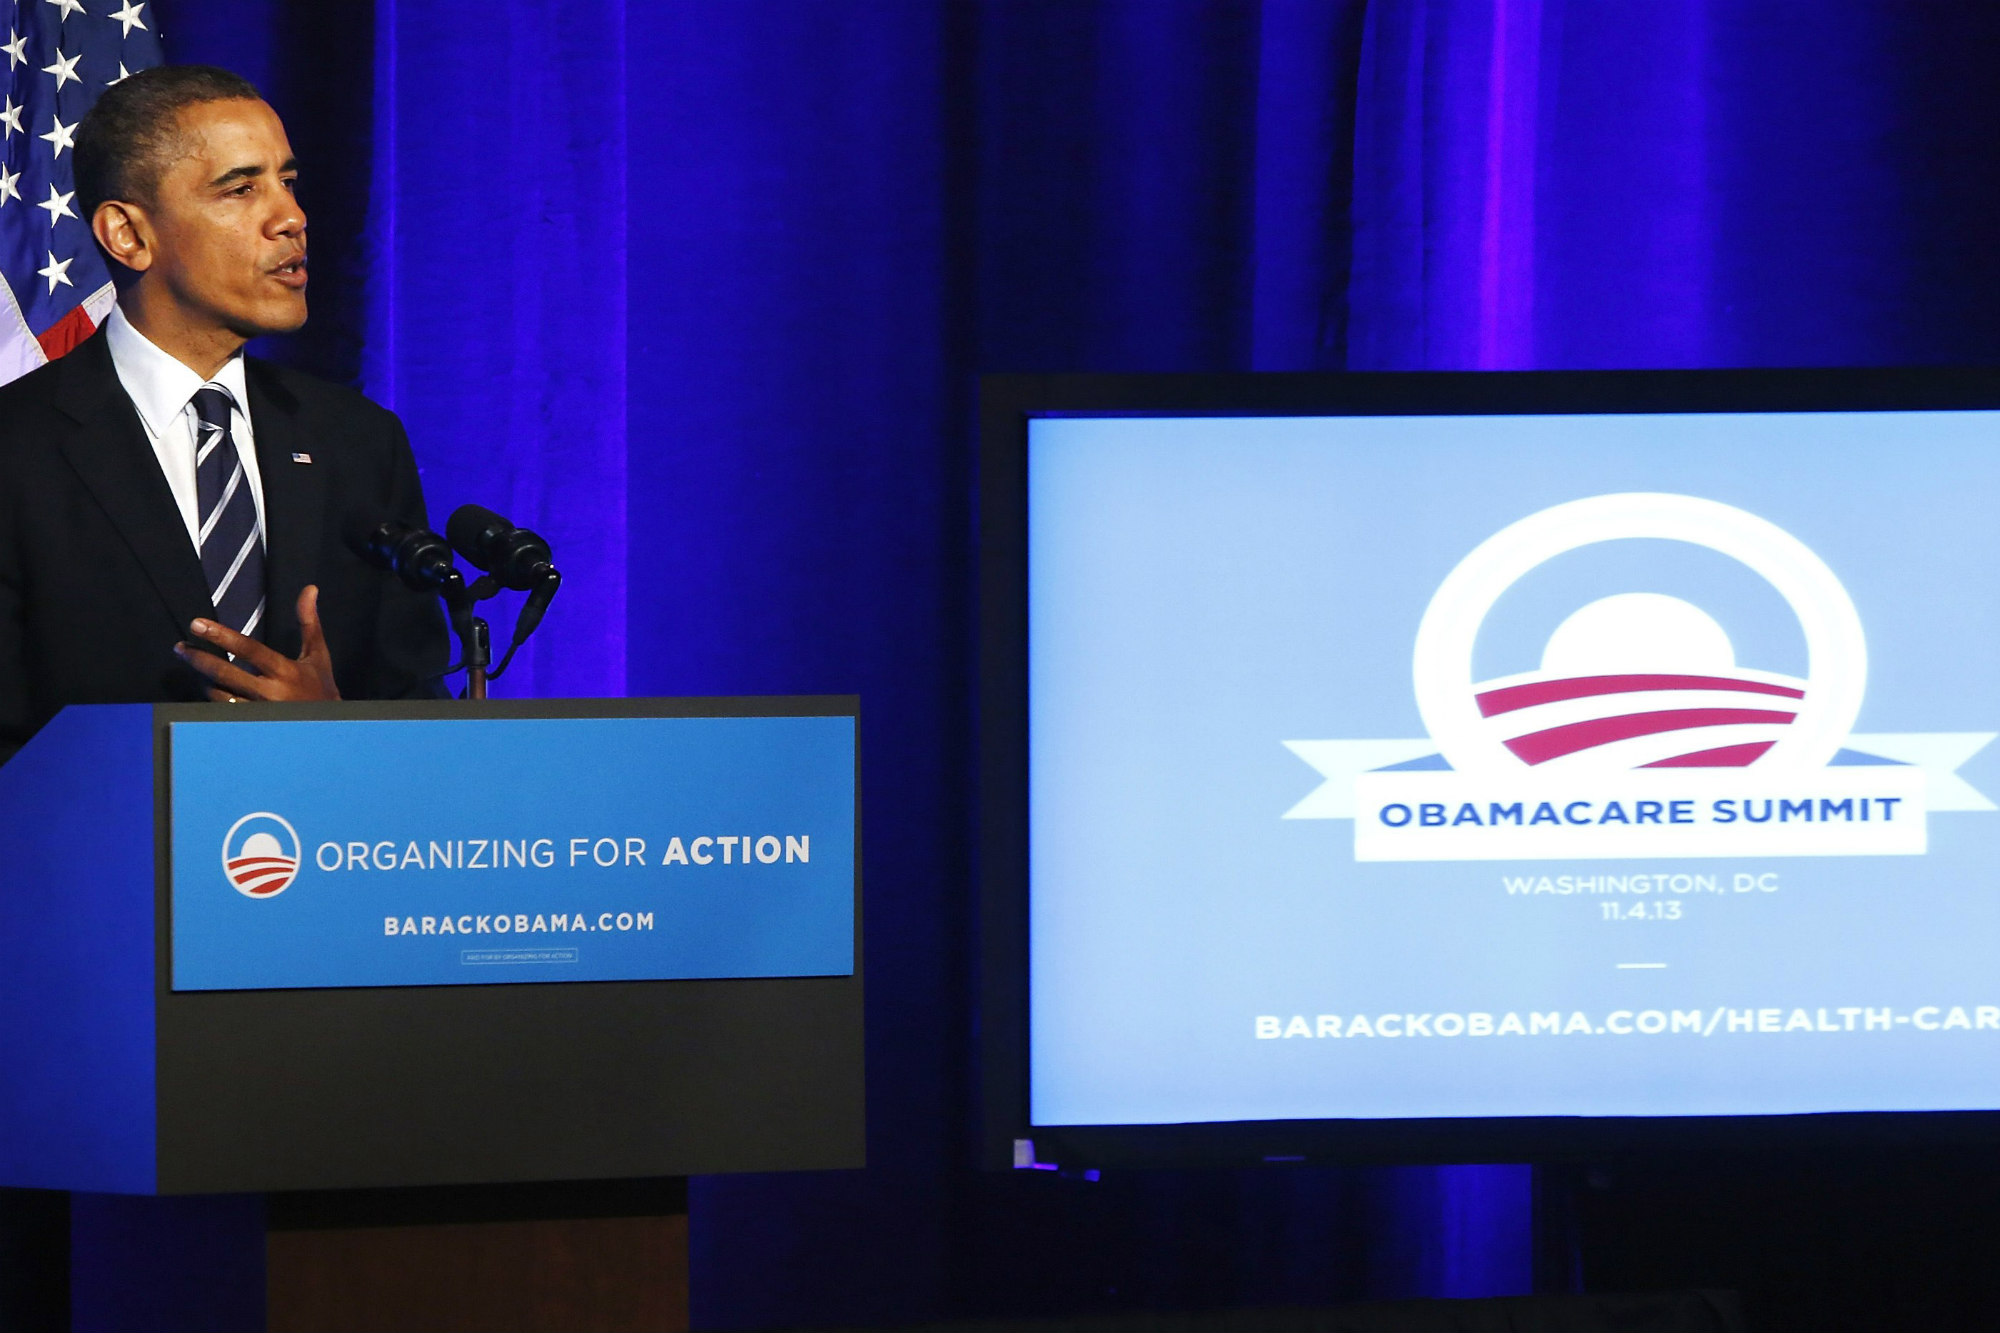 Image: Obamacare collapse continues as major insurer Aetna dumps ALL exchanges, leaving millions without options